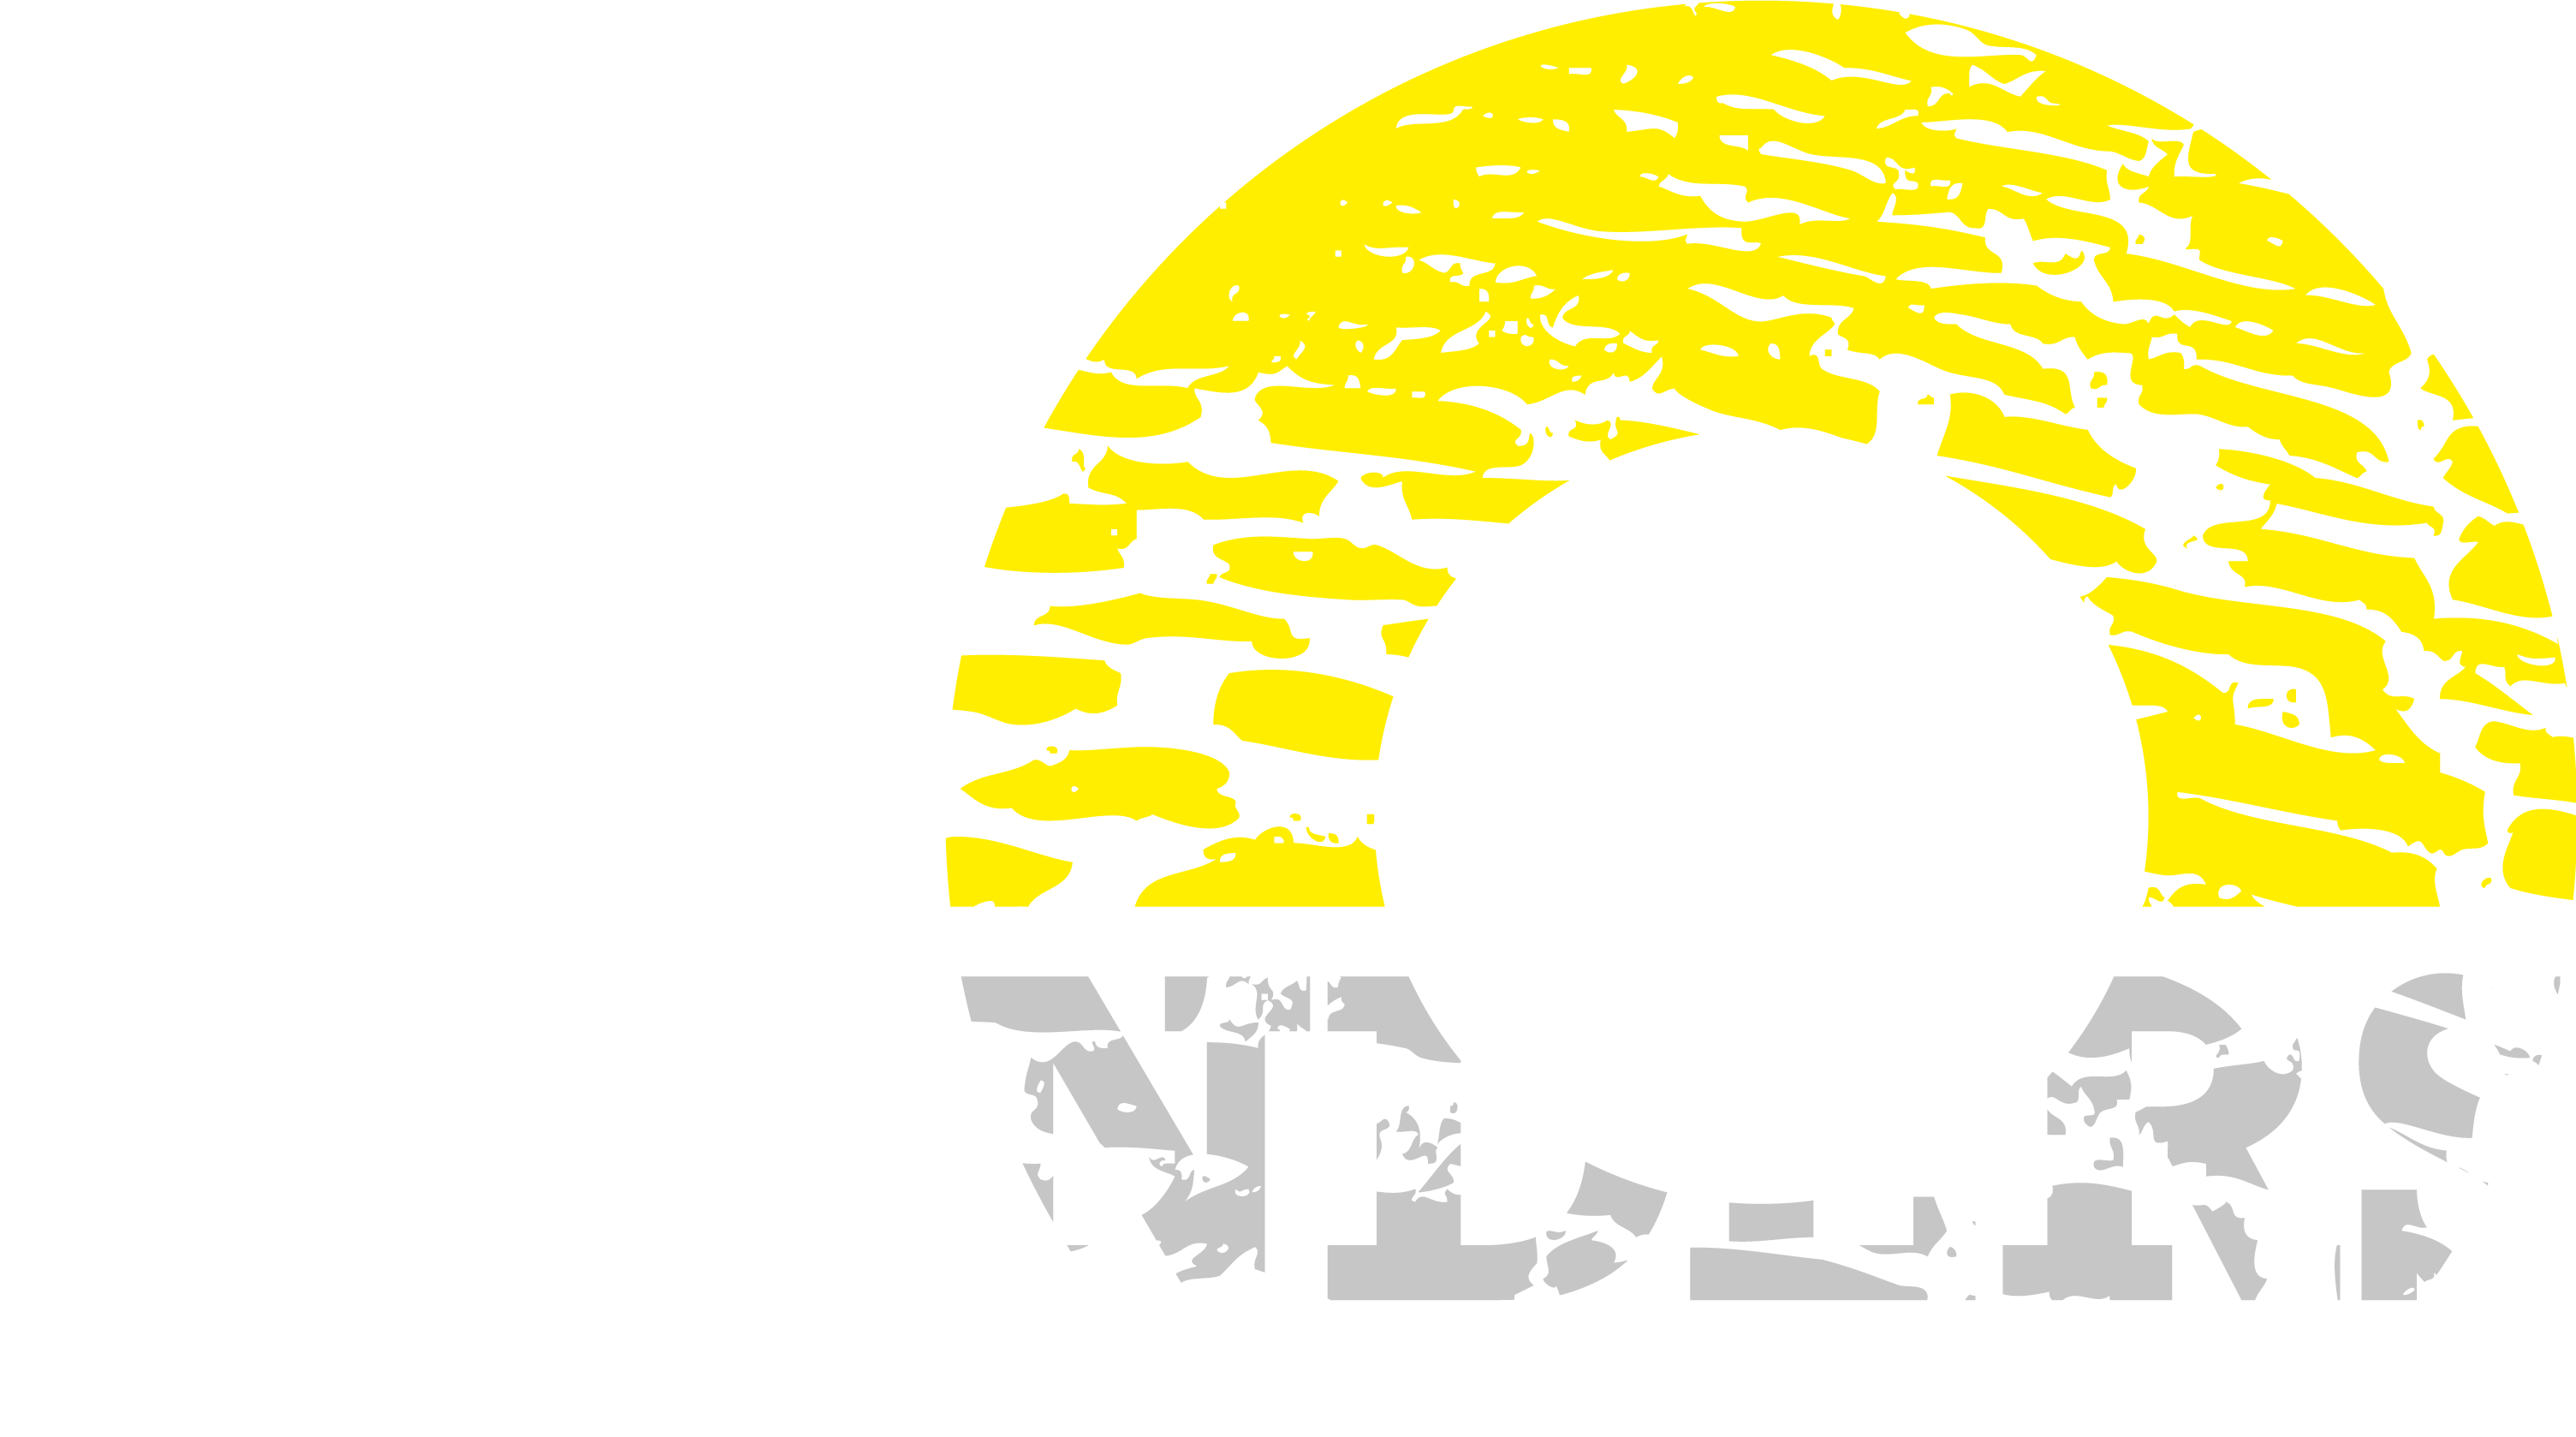 We Ride Flandres